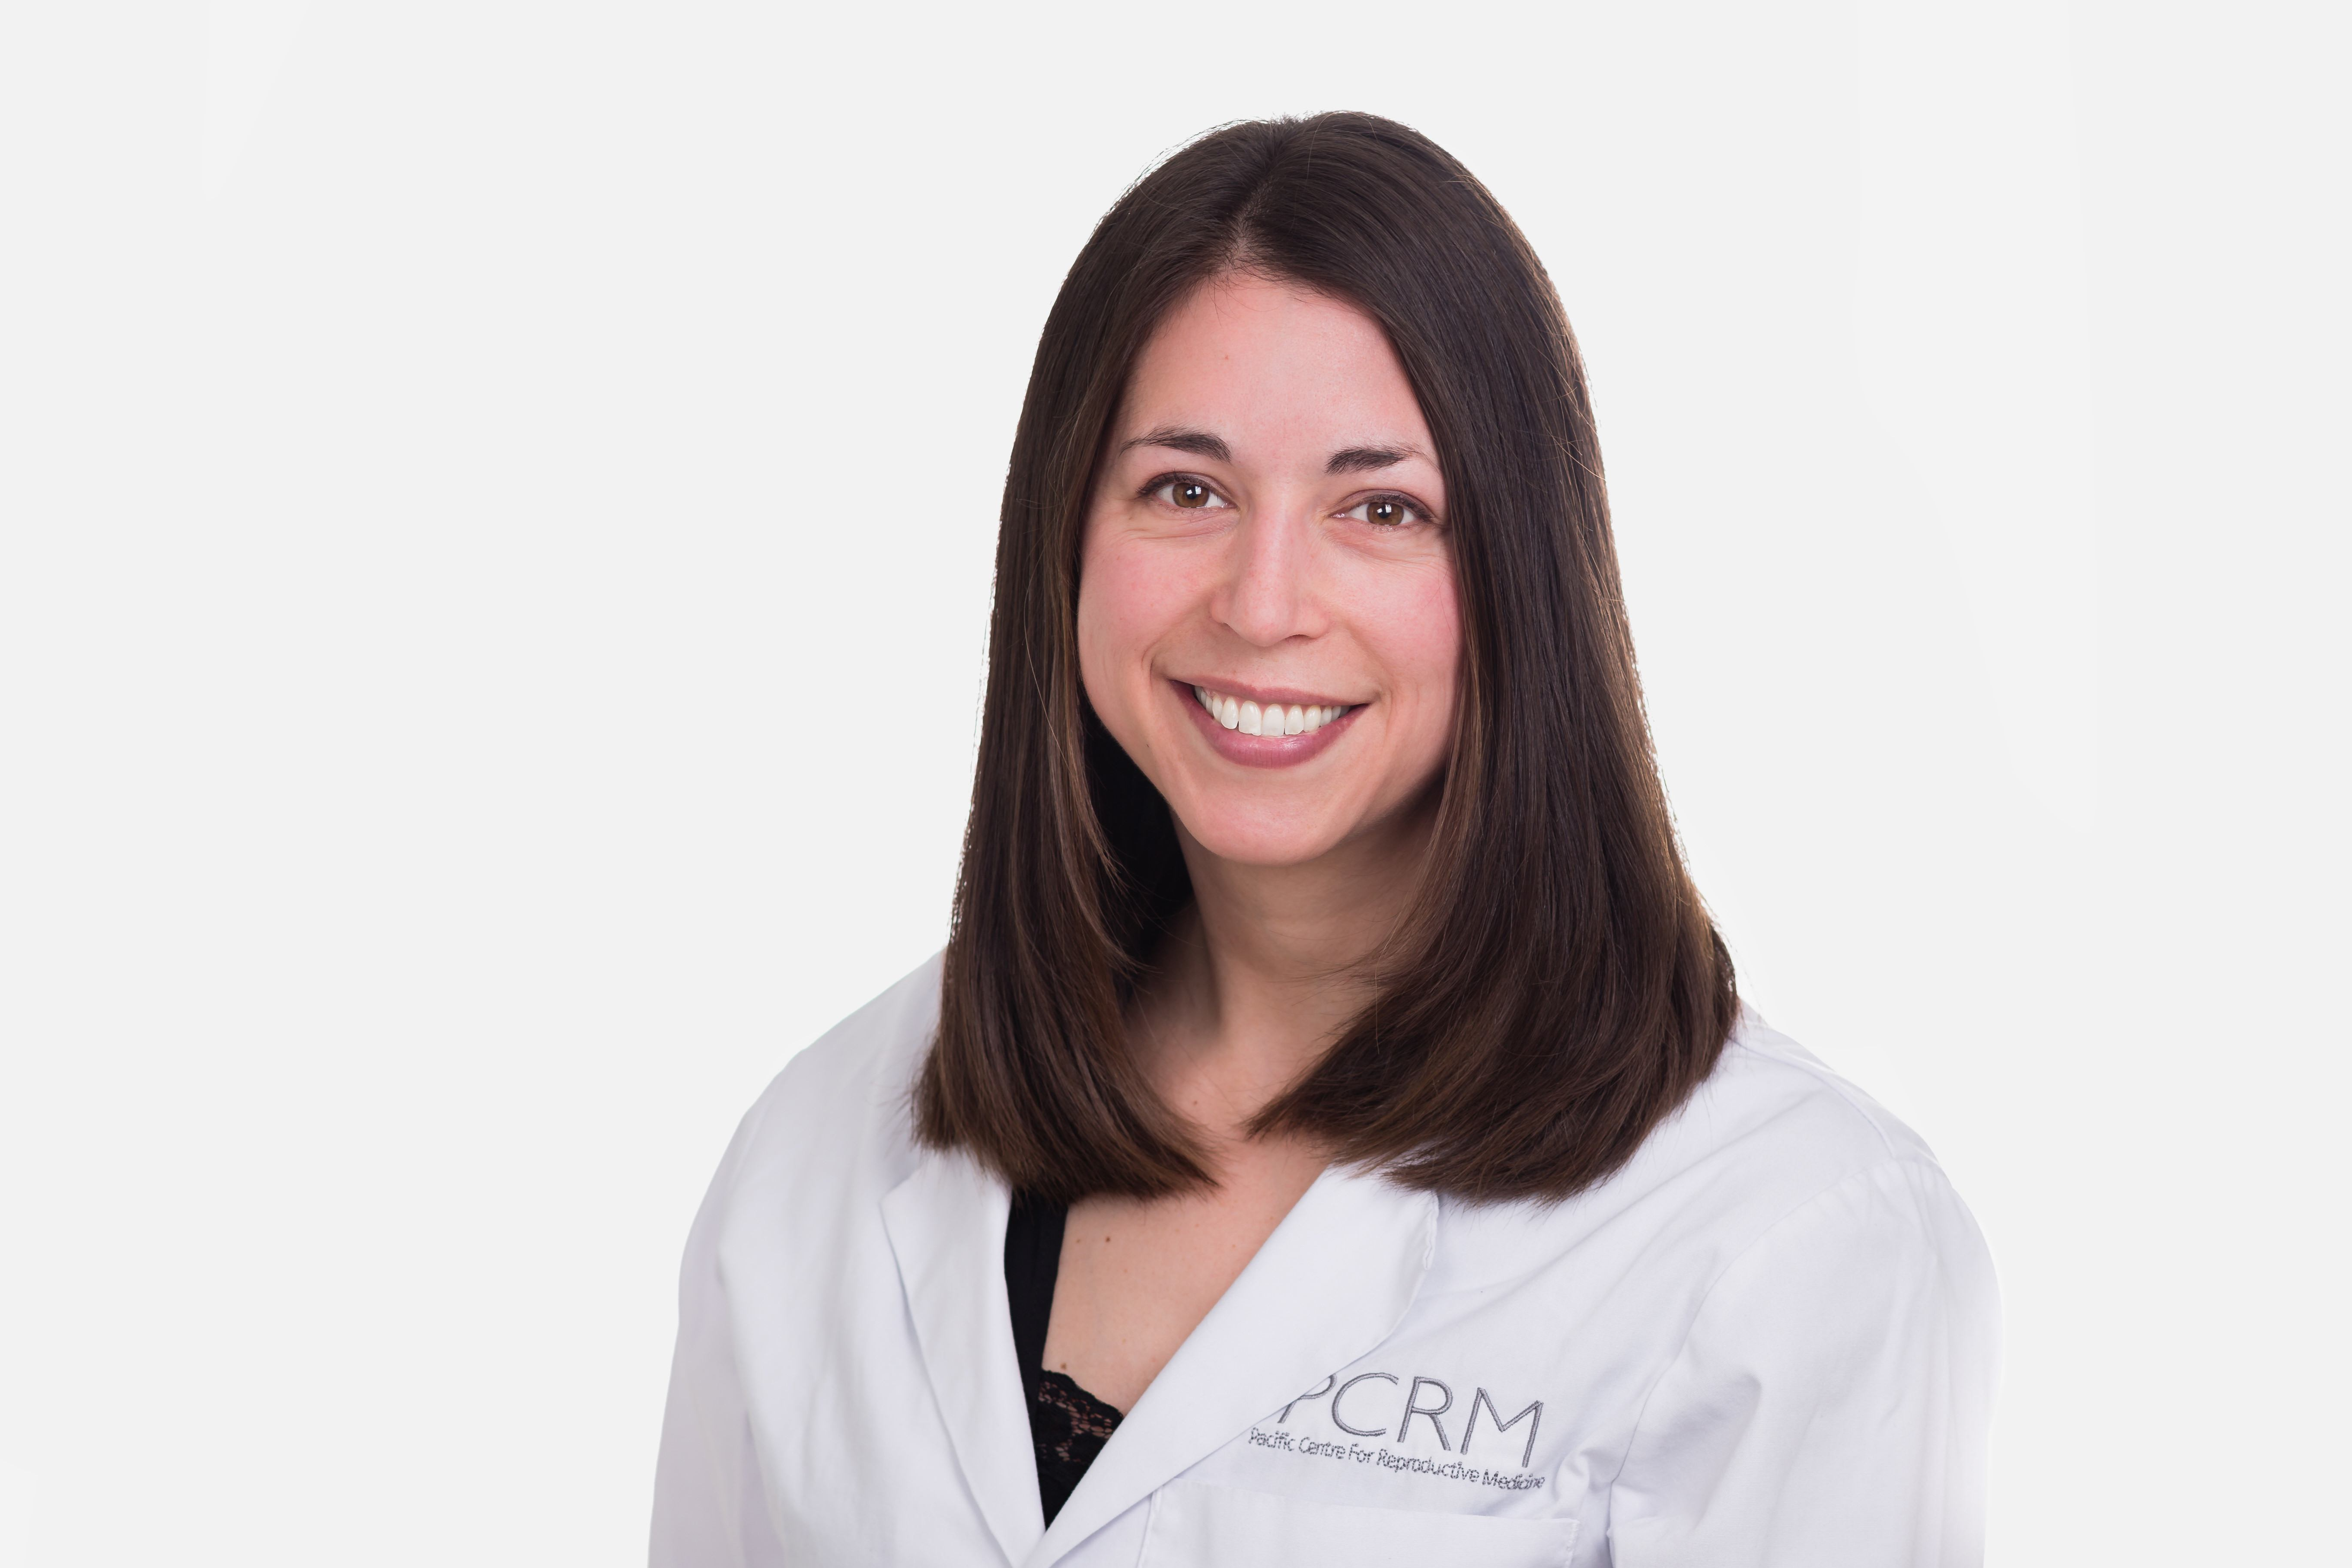 PCRM's fertility scientist and andrologist, Gwen